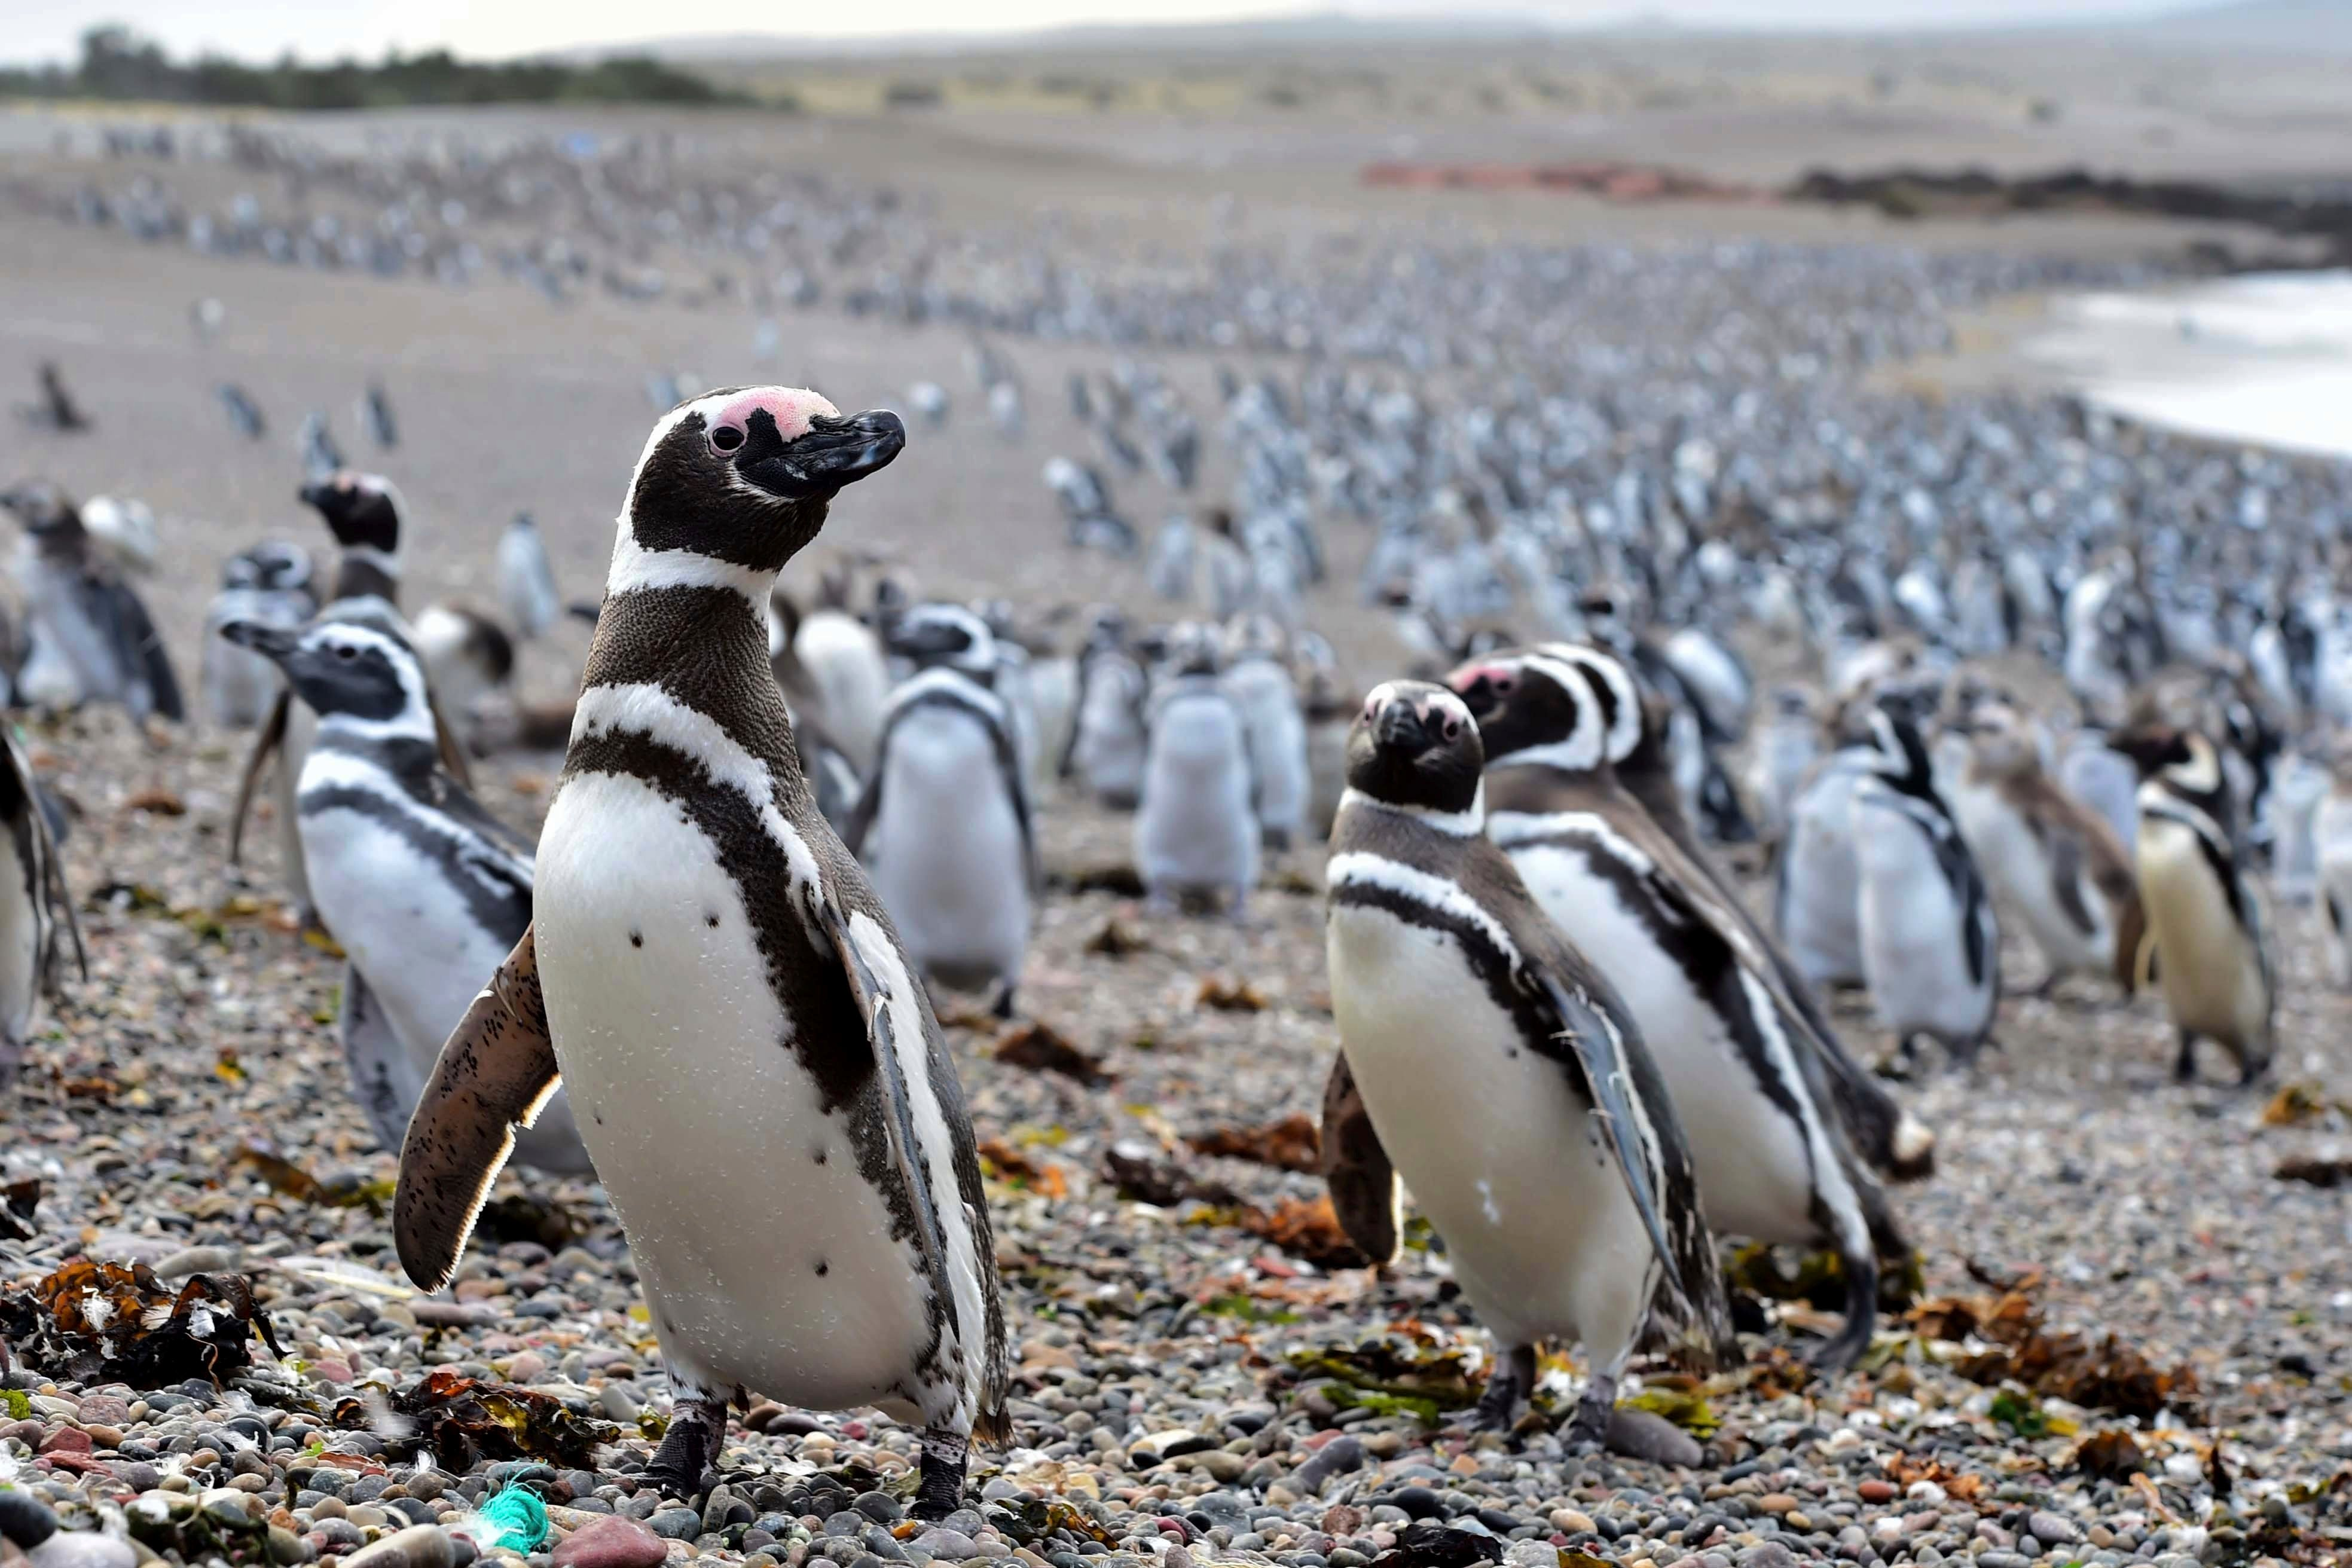 Drawn by an unusually abundant haul of sardines and anchovies, over a million penguins visited the peninsula during this years' breeding season, a recent record number according to local officials. Punta Tombo represents the largest colony of Magellanic p